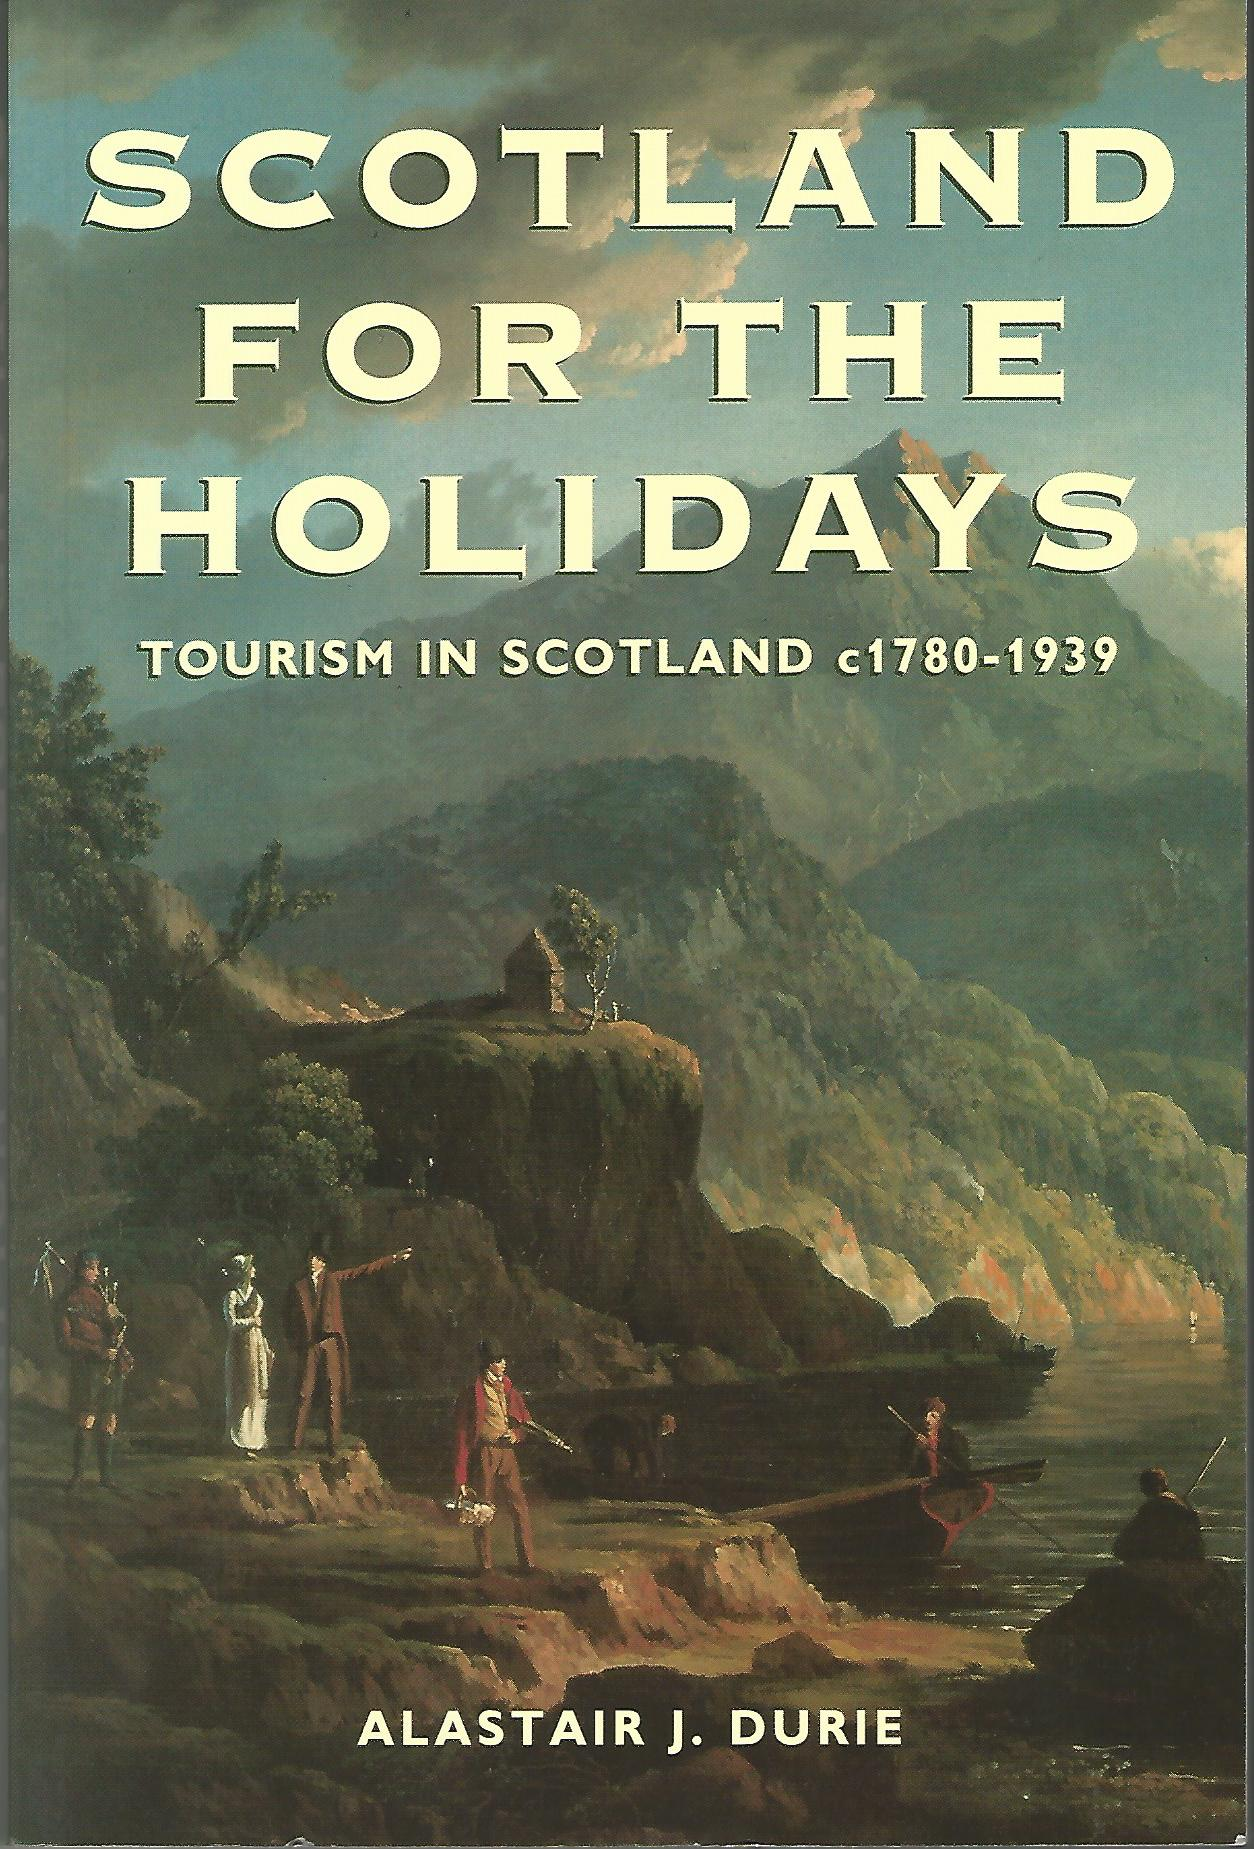 Image for Scotland for the Holidays: Tourism in Scotland c1780-1939